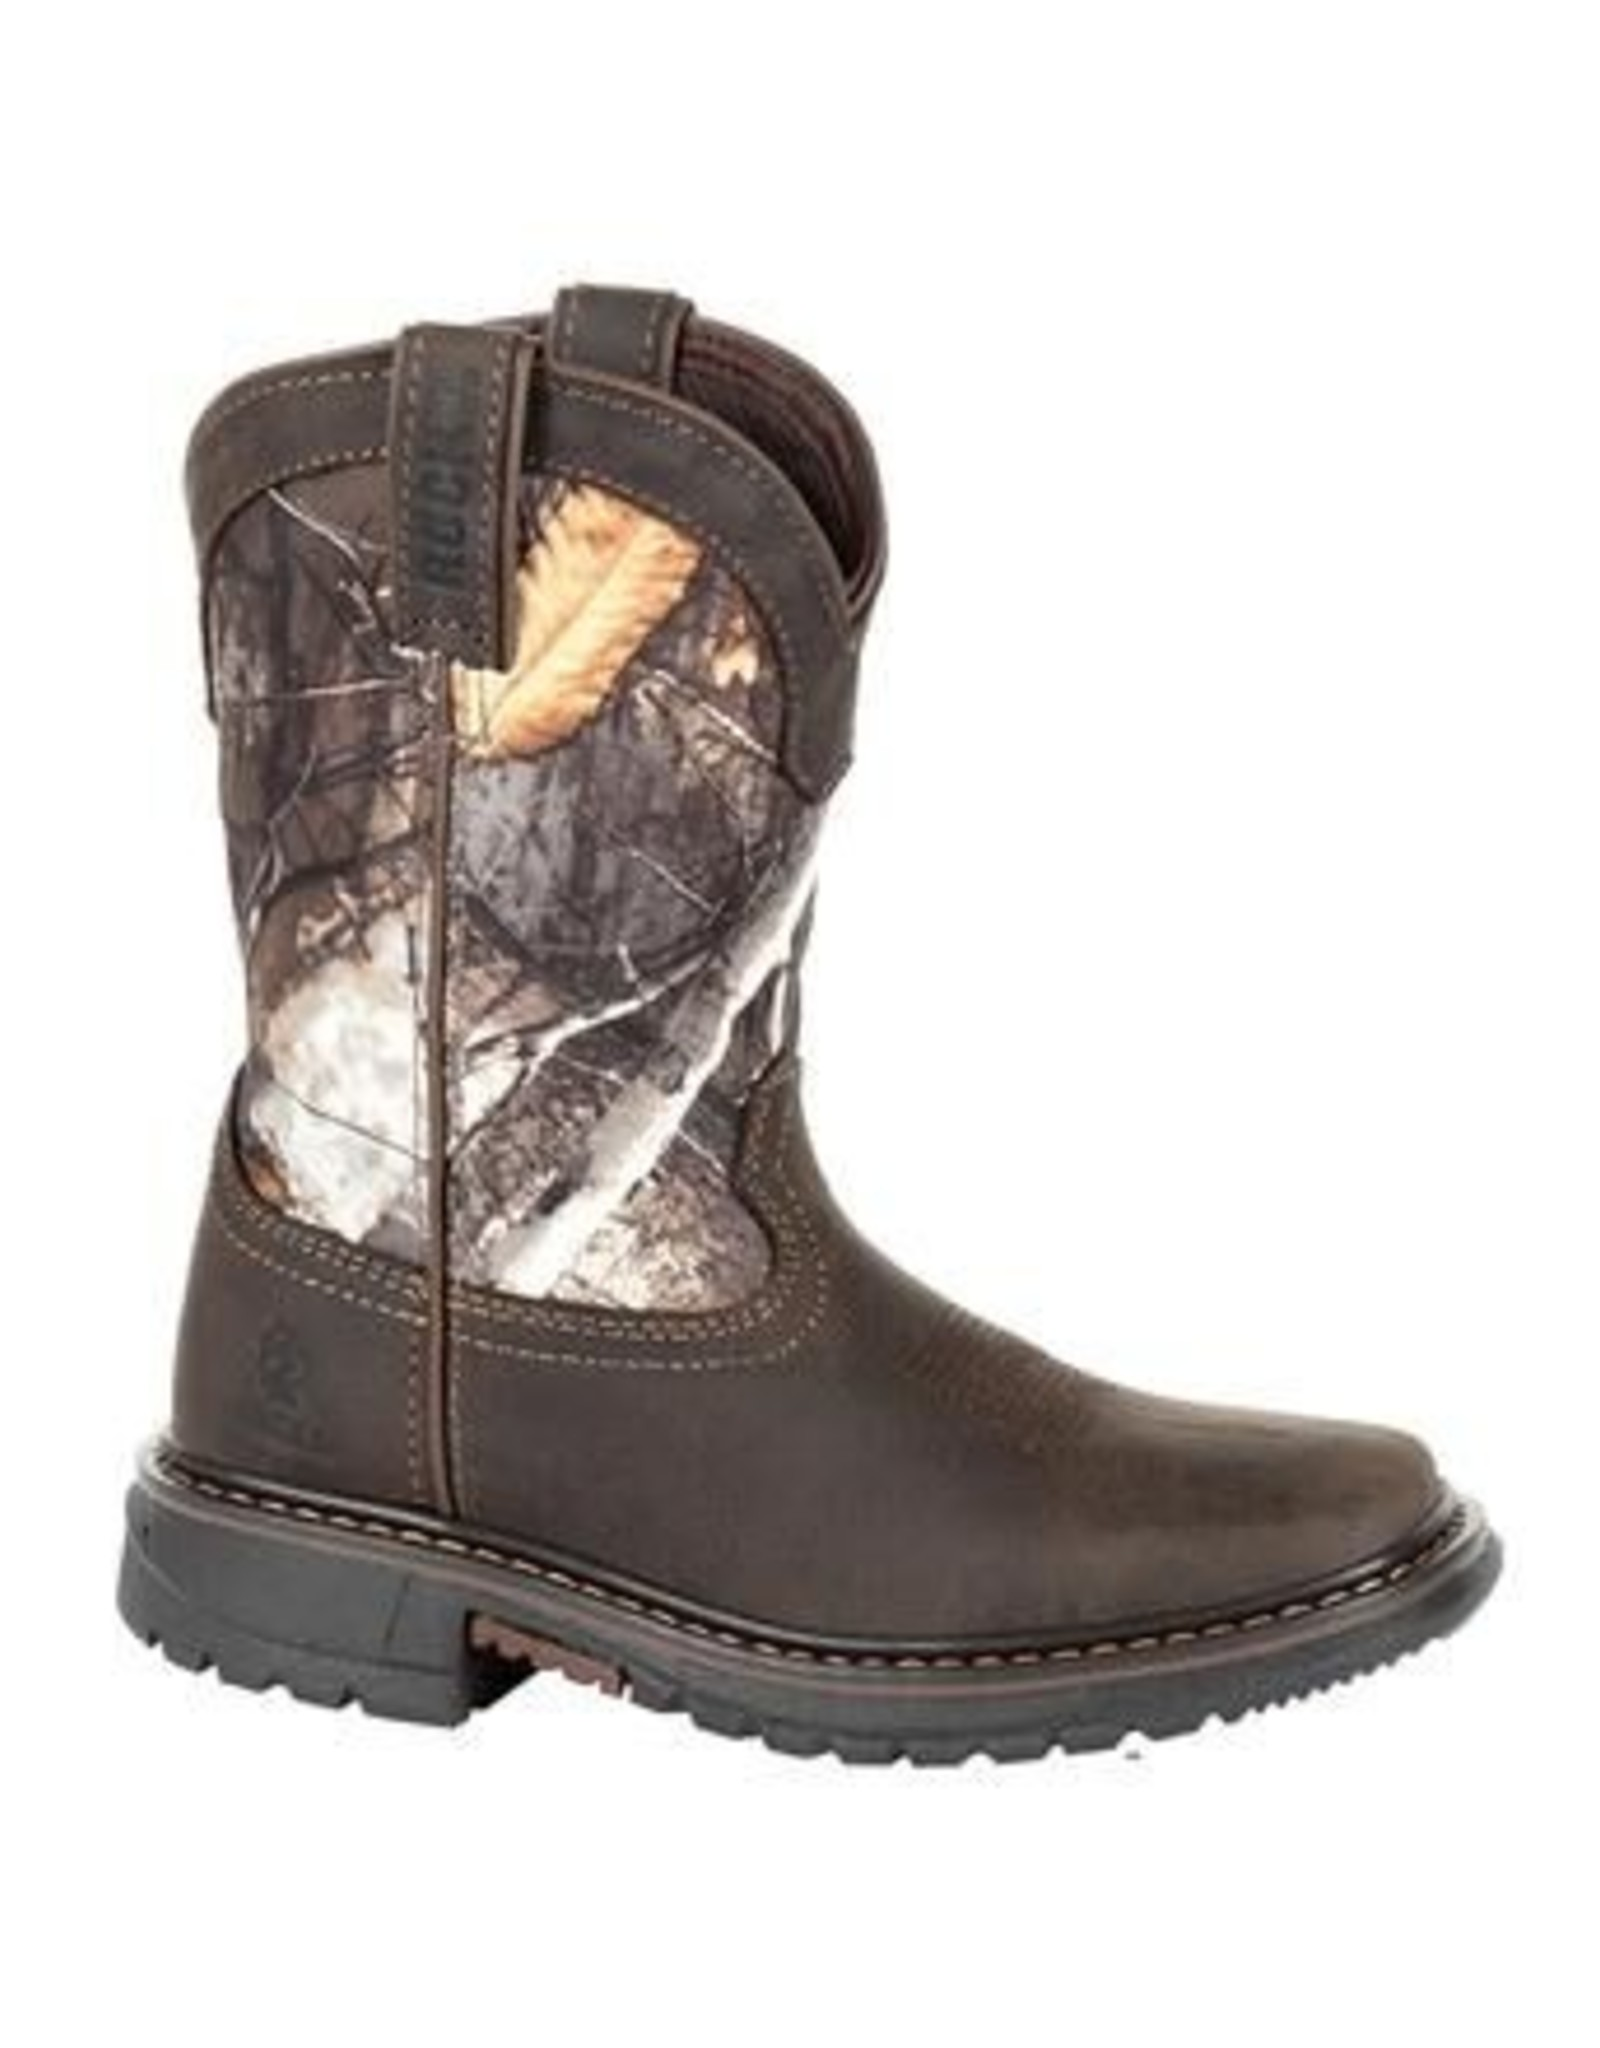 "Rocky Brands Boots Kids Brn 8"" Waterproof Western Real Tree Camo Boots"